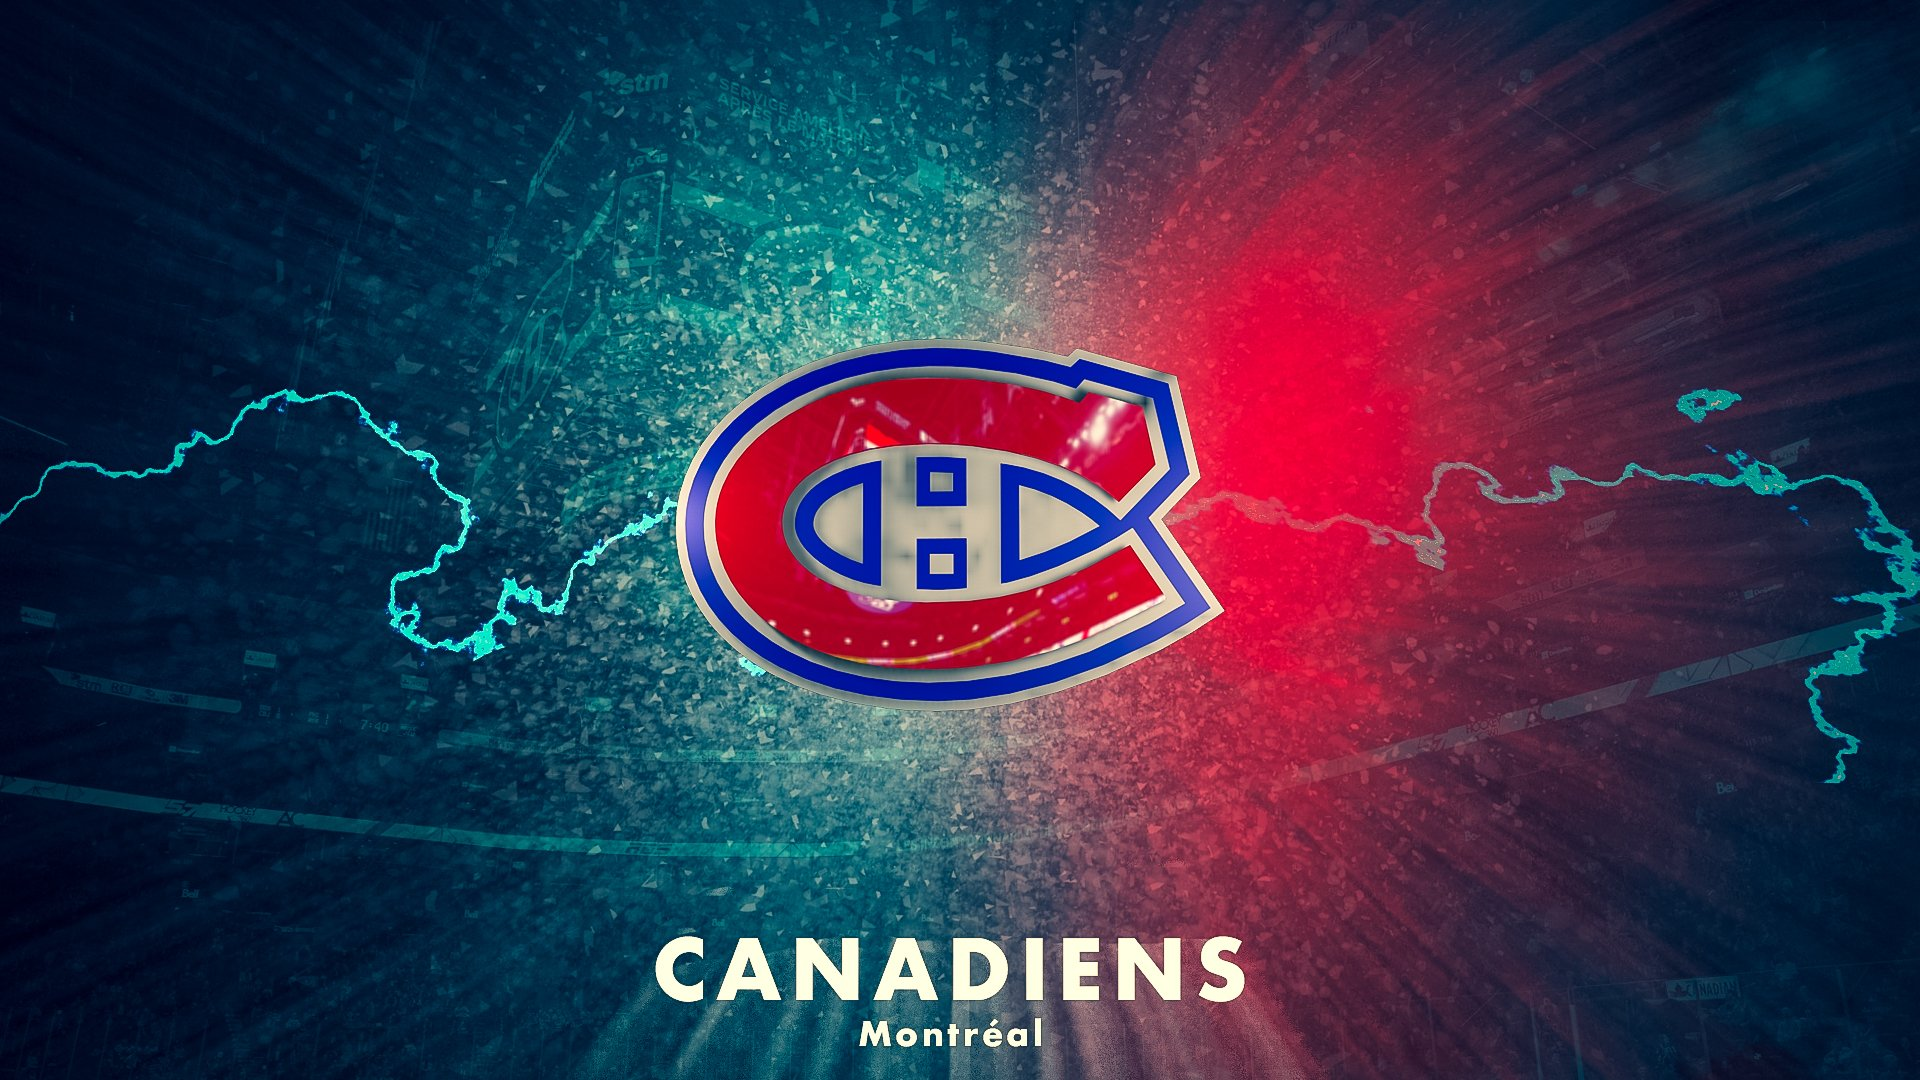 Montreal Canadiens Hd Wallpaper Background Image 1920x1080 Id 982673 Wallpaper Abyss